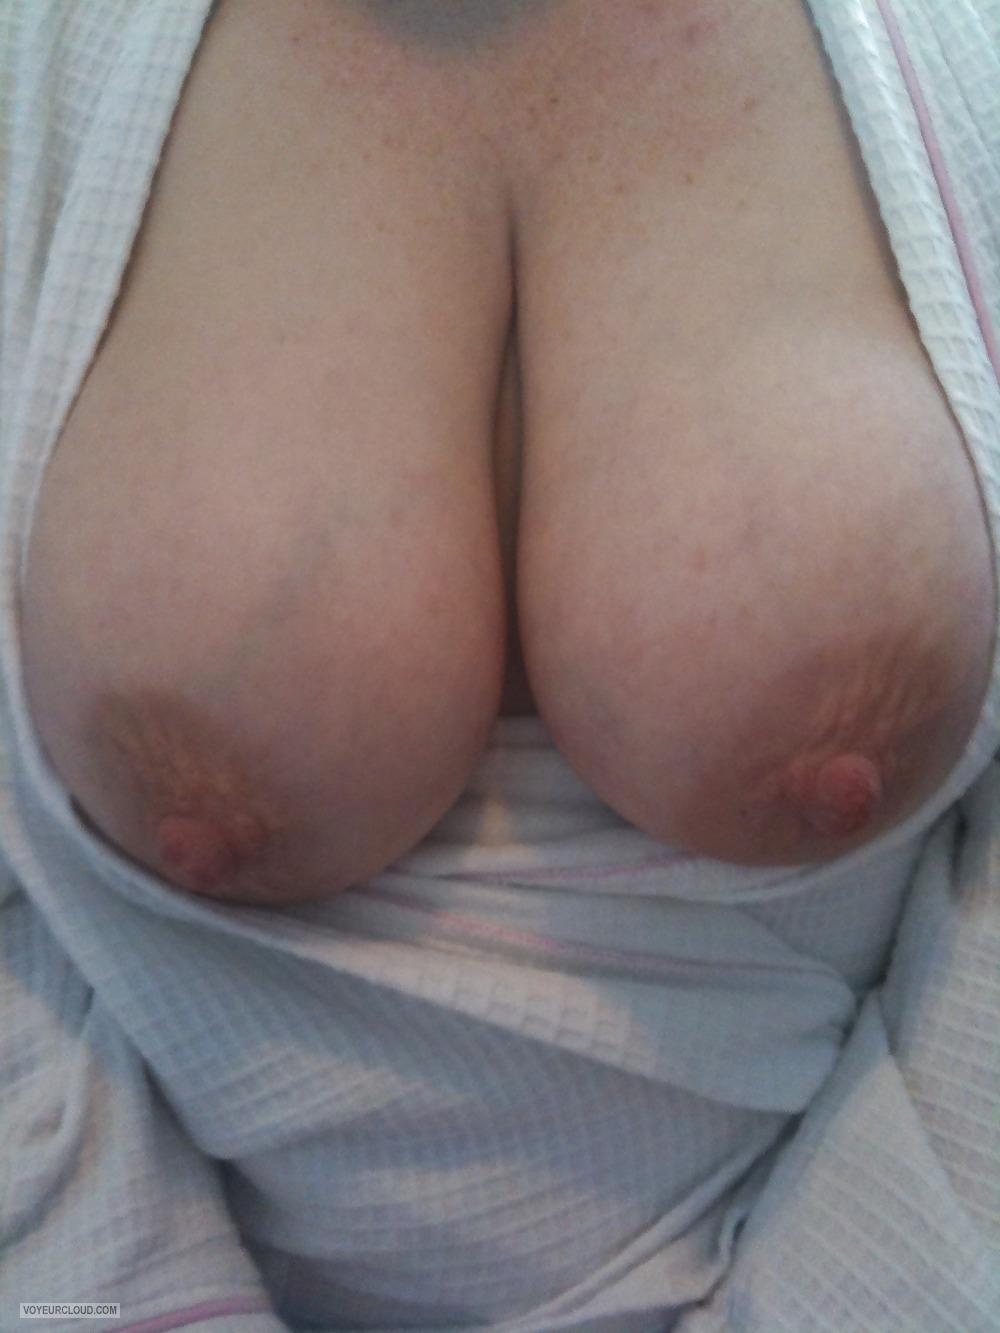 Big Tits Of My Wife Karen